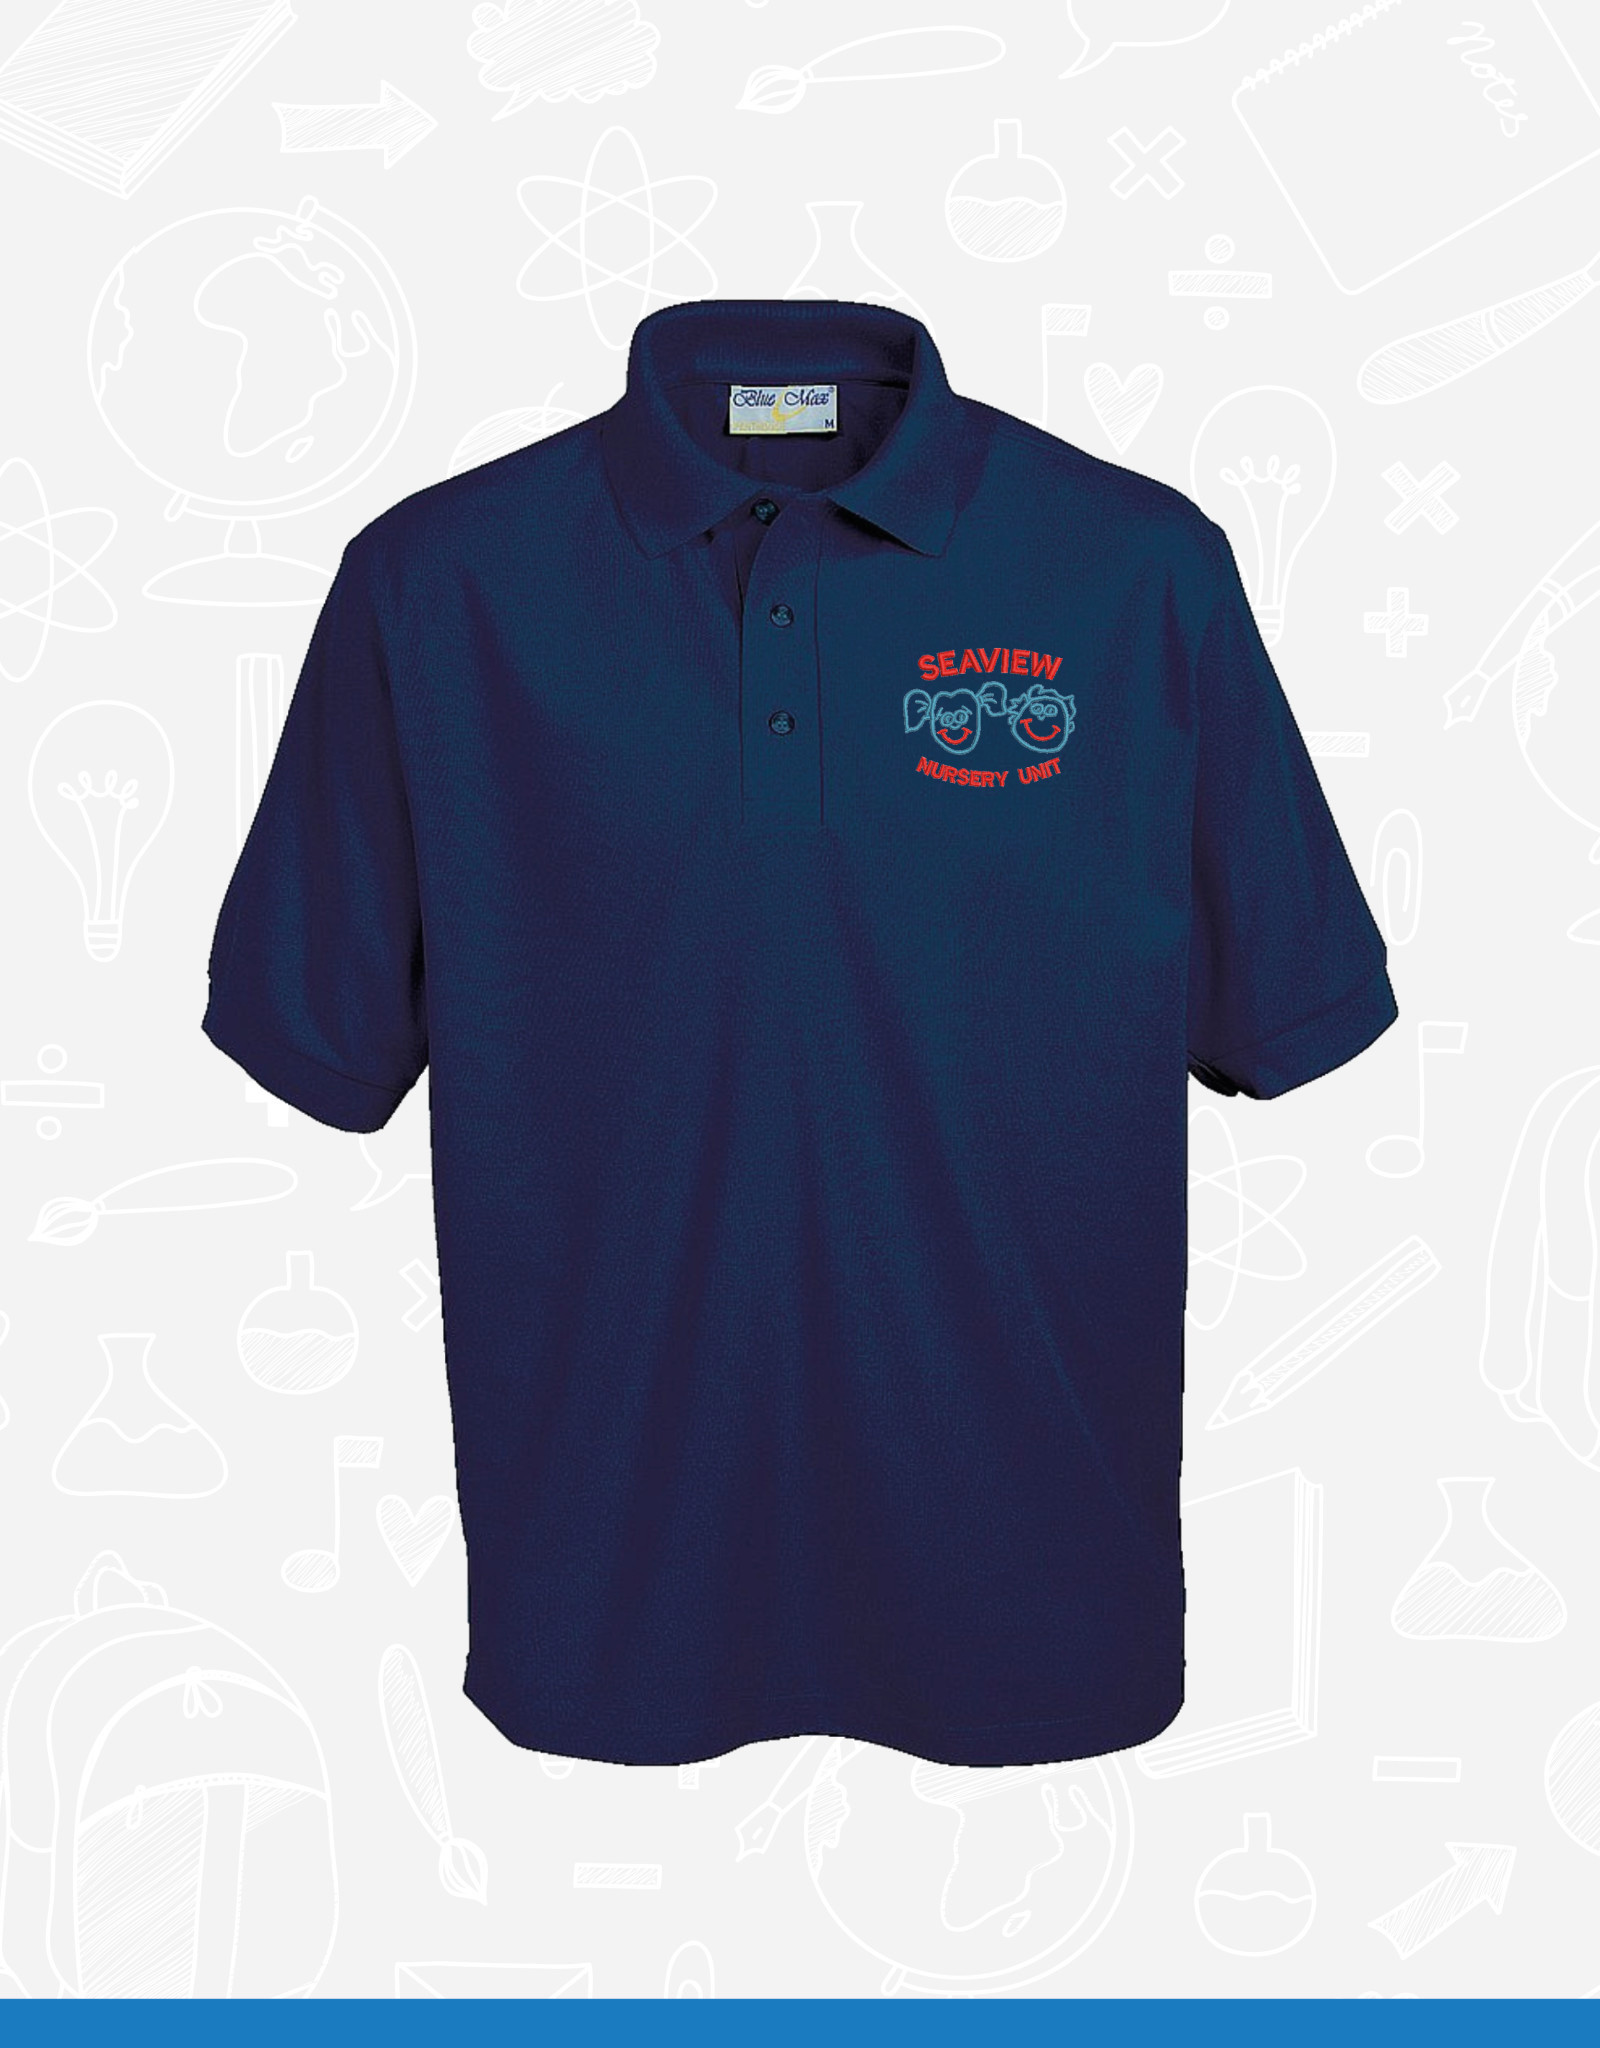 Banner Seaview Nursery Unit Staff Polo (3PP)